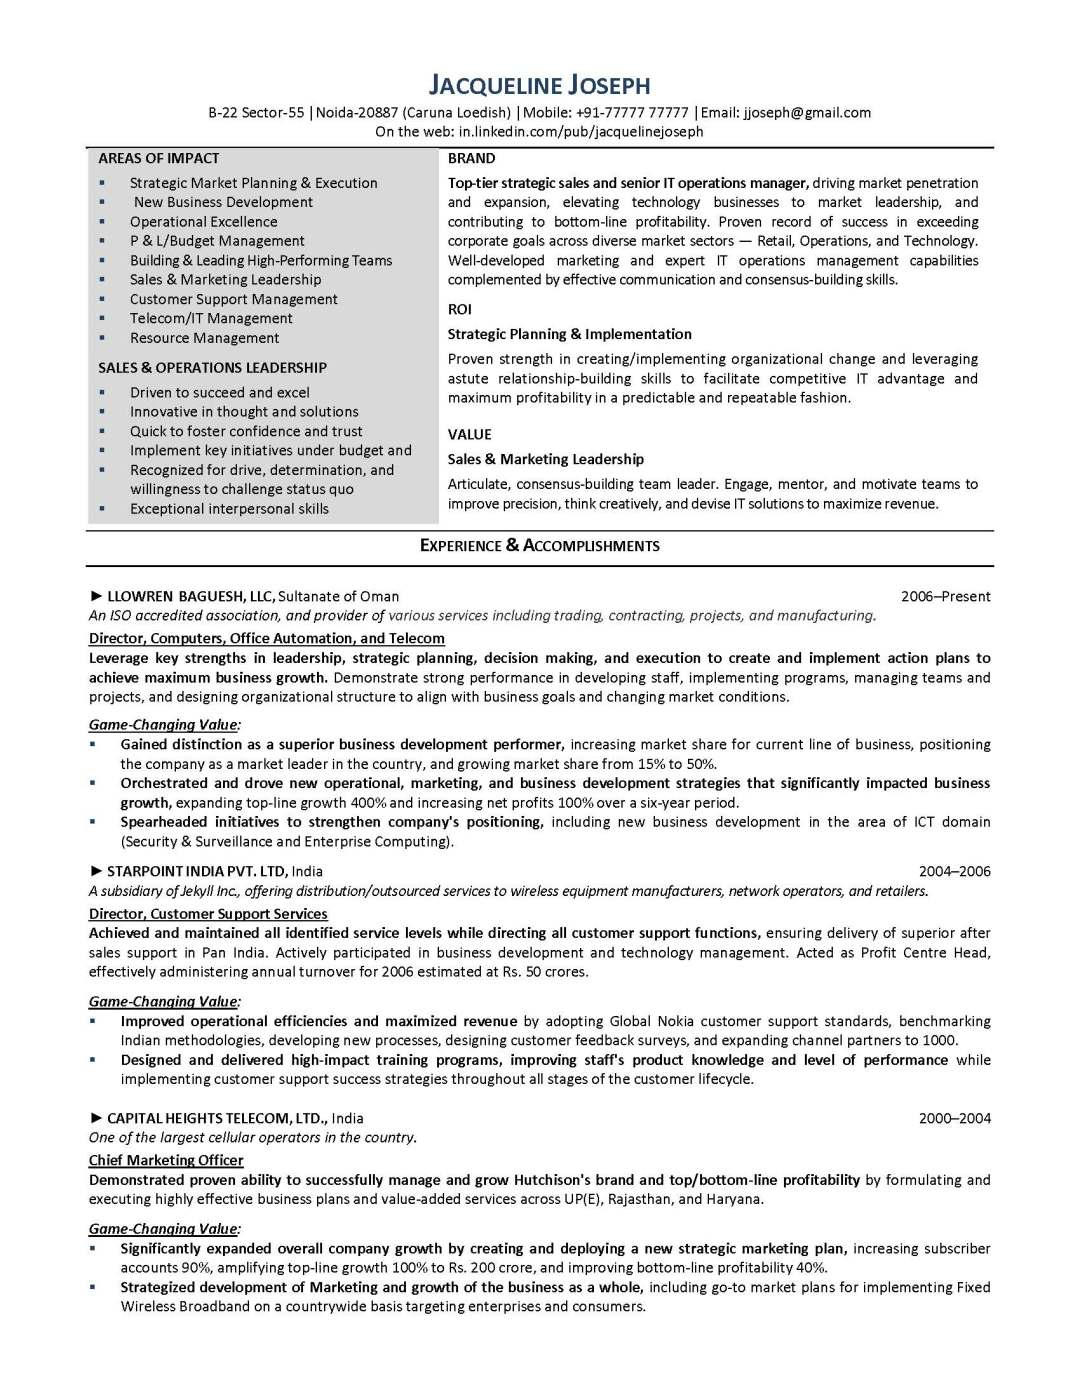 IT resume sample 1, provided by Elite Resume Writing Services